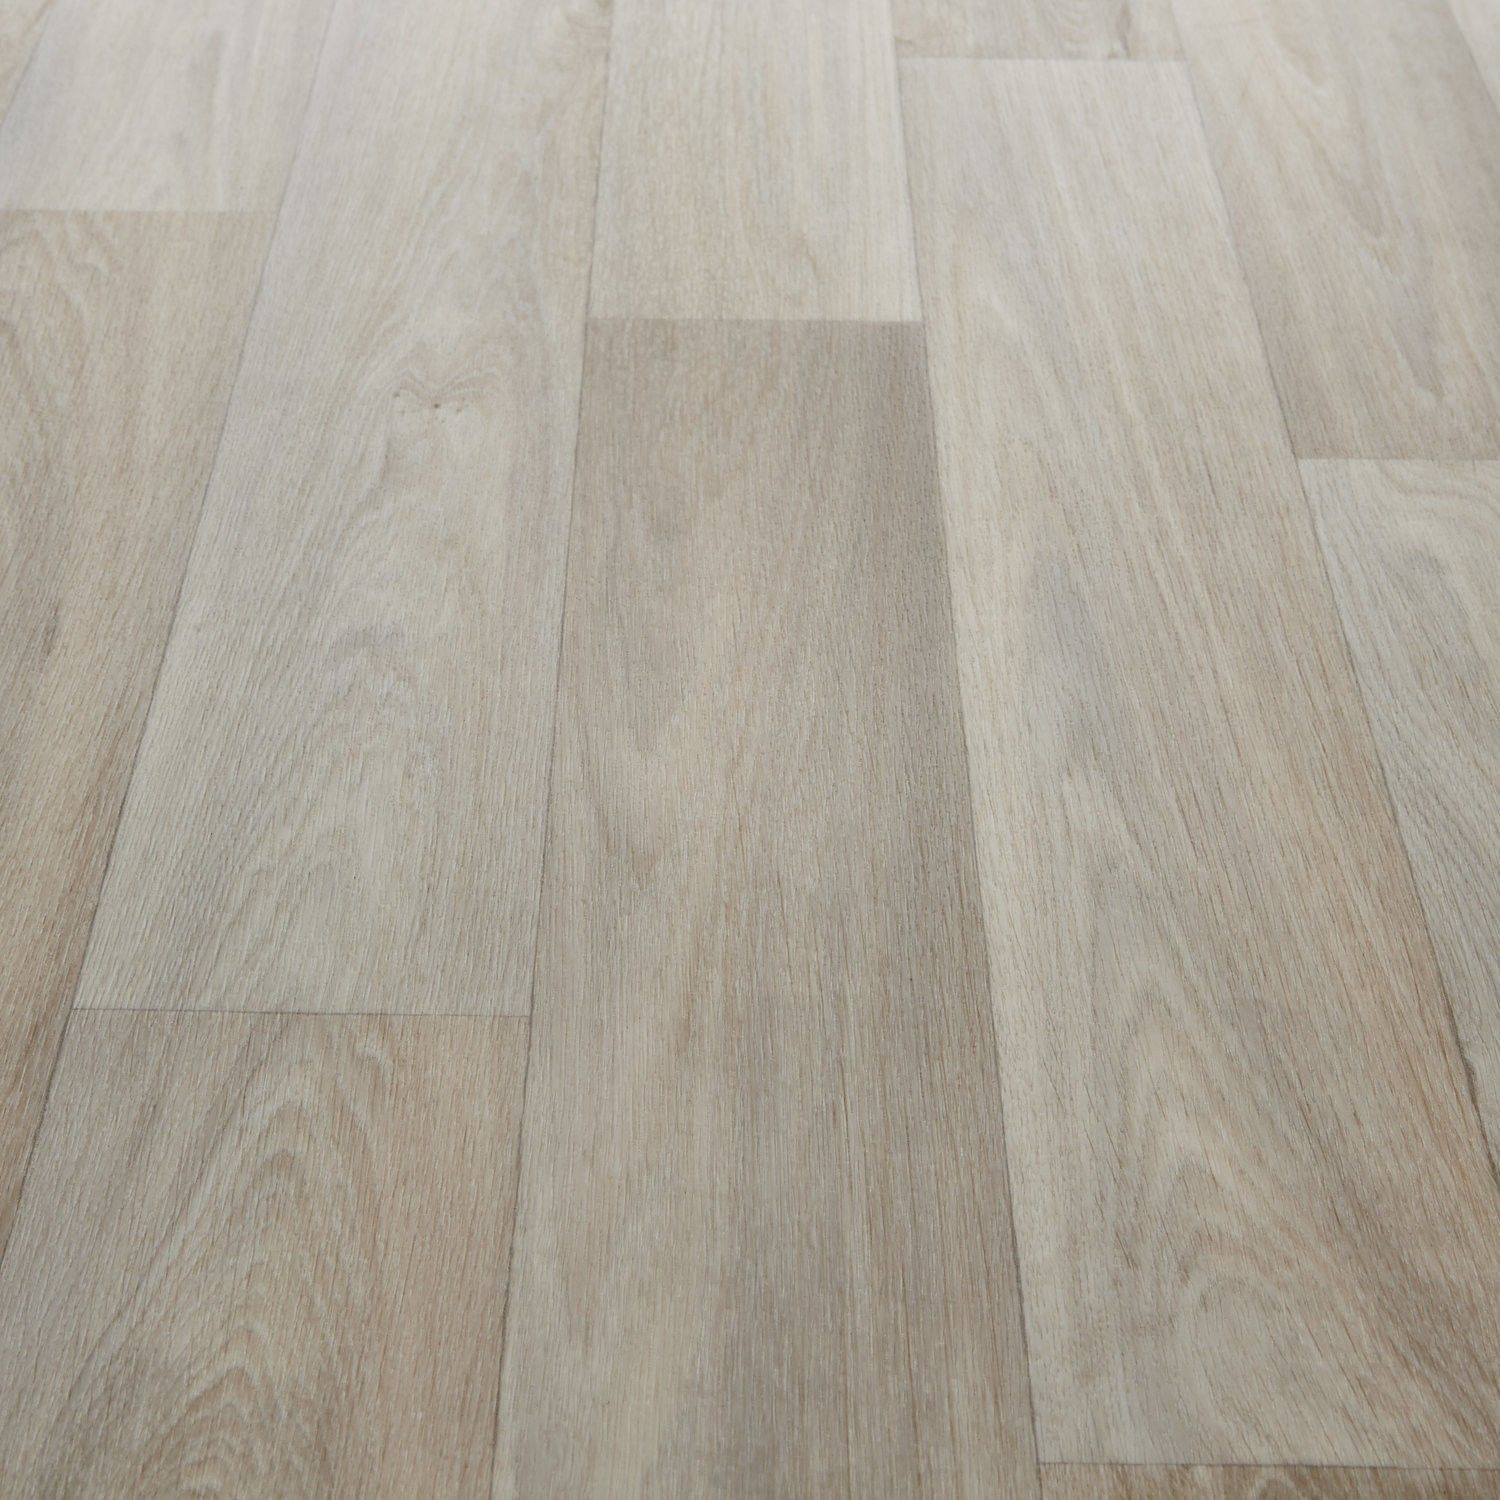 Wood effect lino flooring uk carpet review for Lino flooring wood effect